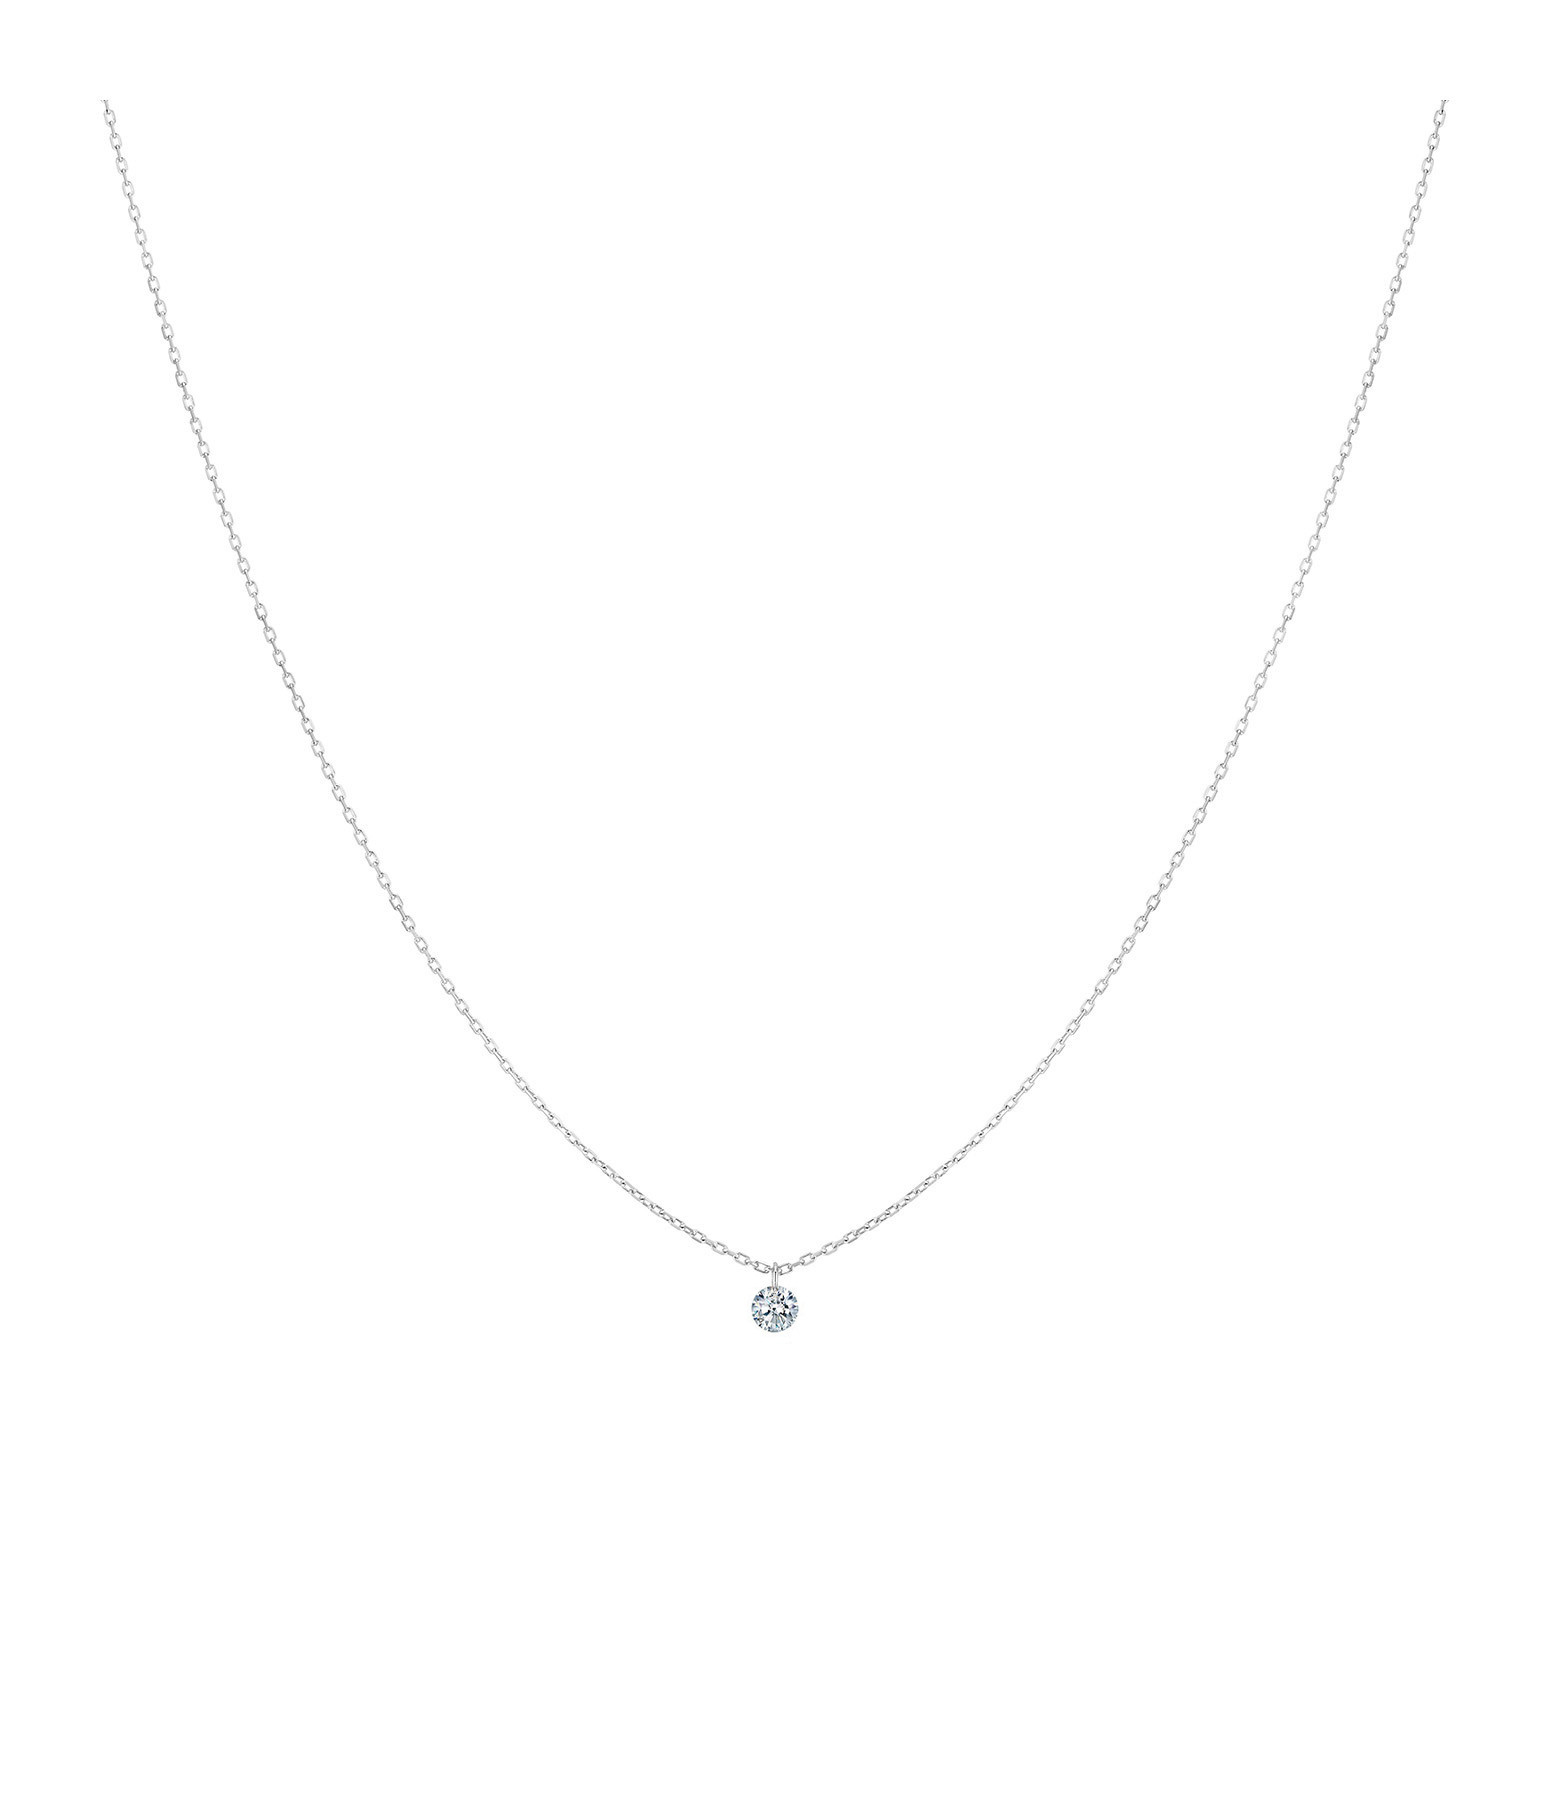 LA BRUNE & LA BLONDE - Collier 360° Diamant Brillant 0,07 Or Blanc